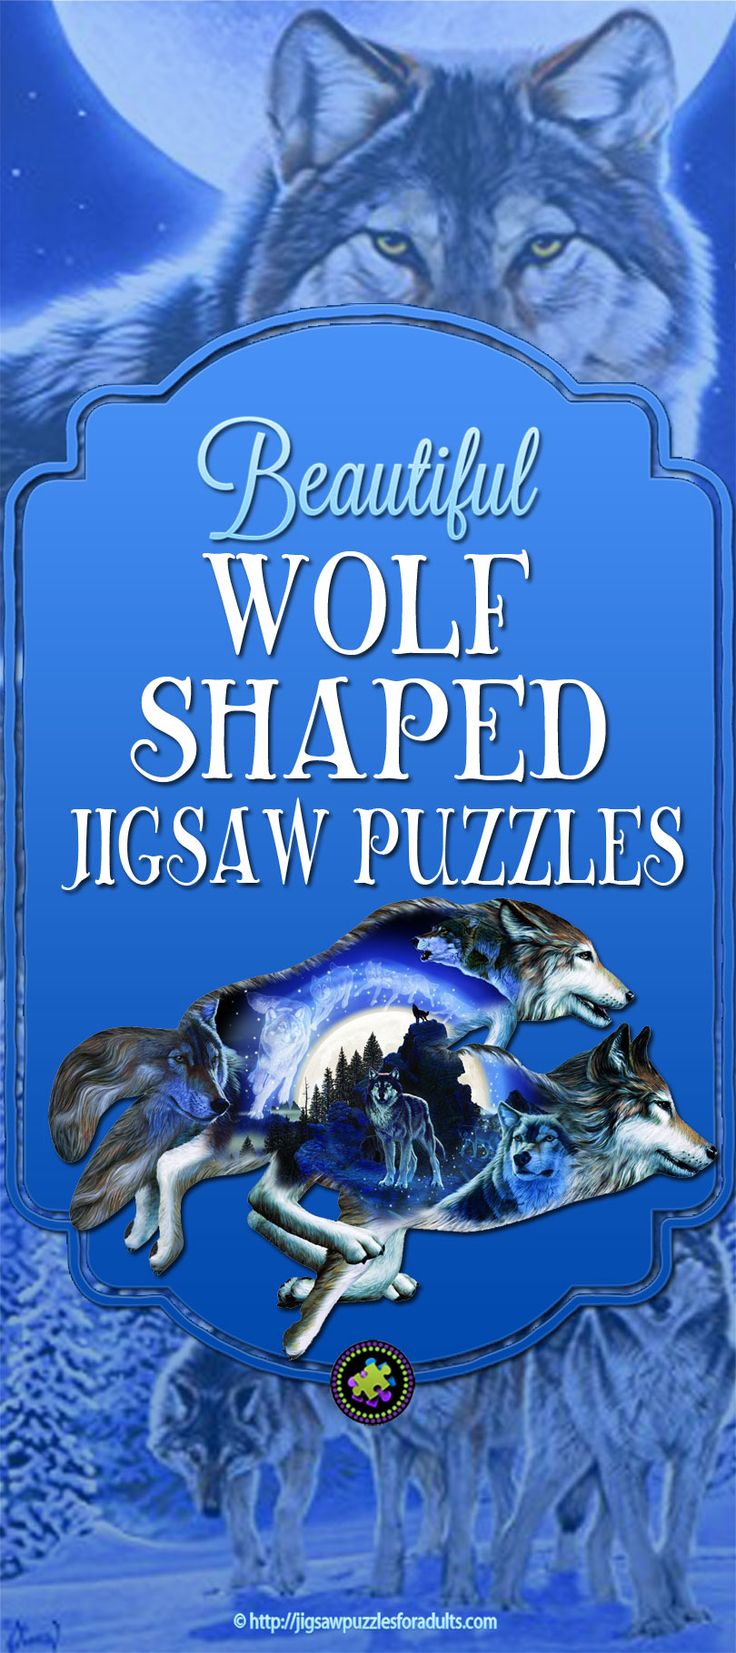 Beautiful Wolf Shaped Jigsaw Puzzles for the avid jigsaw puzzler who loves wolves and wildlife.These shaped jigsaw puzzles of wolves are challenging but once you are finished it's it's well worth the effort.